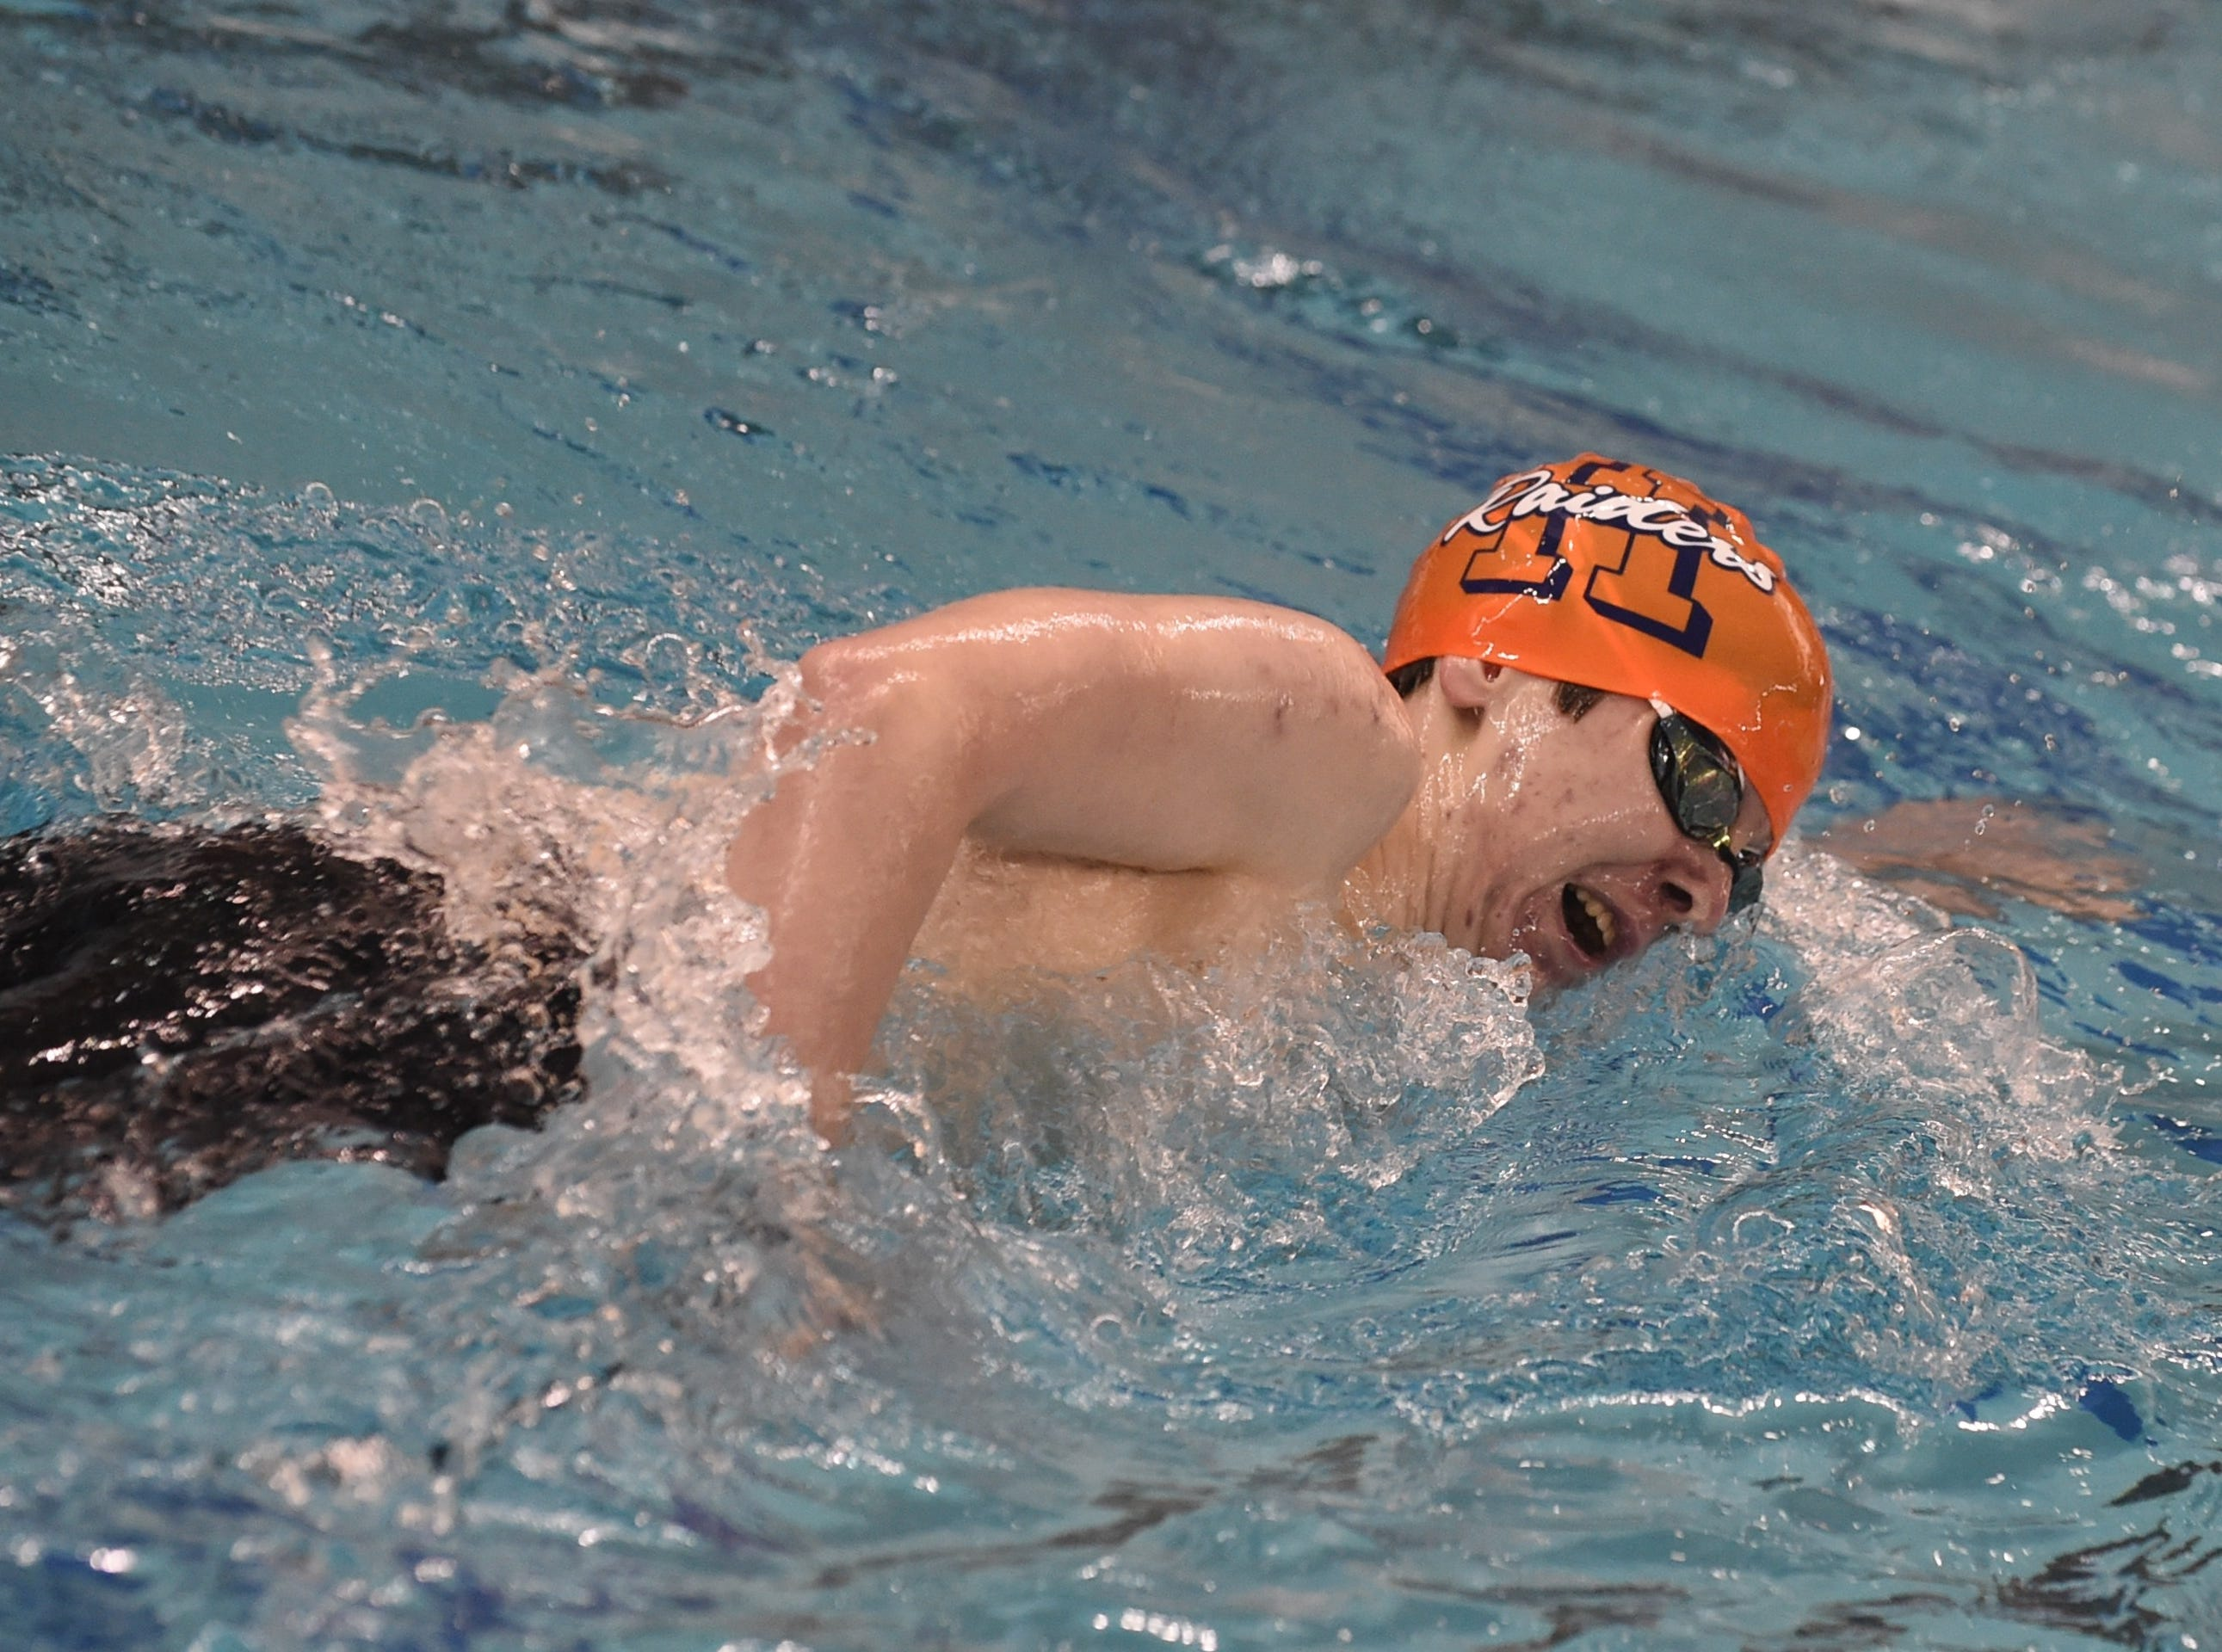 Images from Saturday's North Central Conference Swimming and Diving Championships at Purdue.